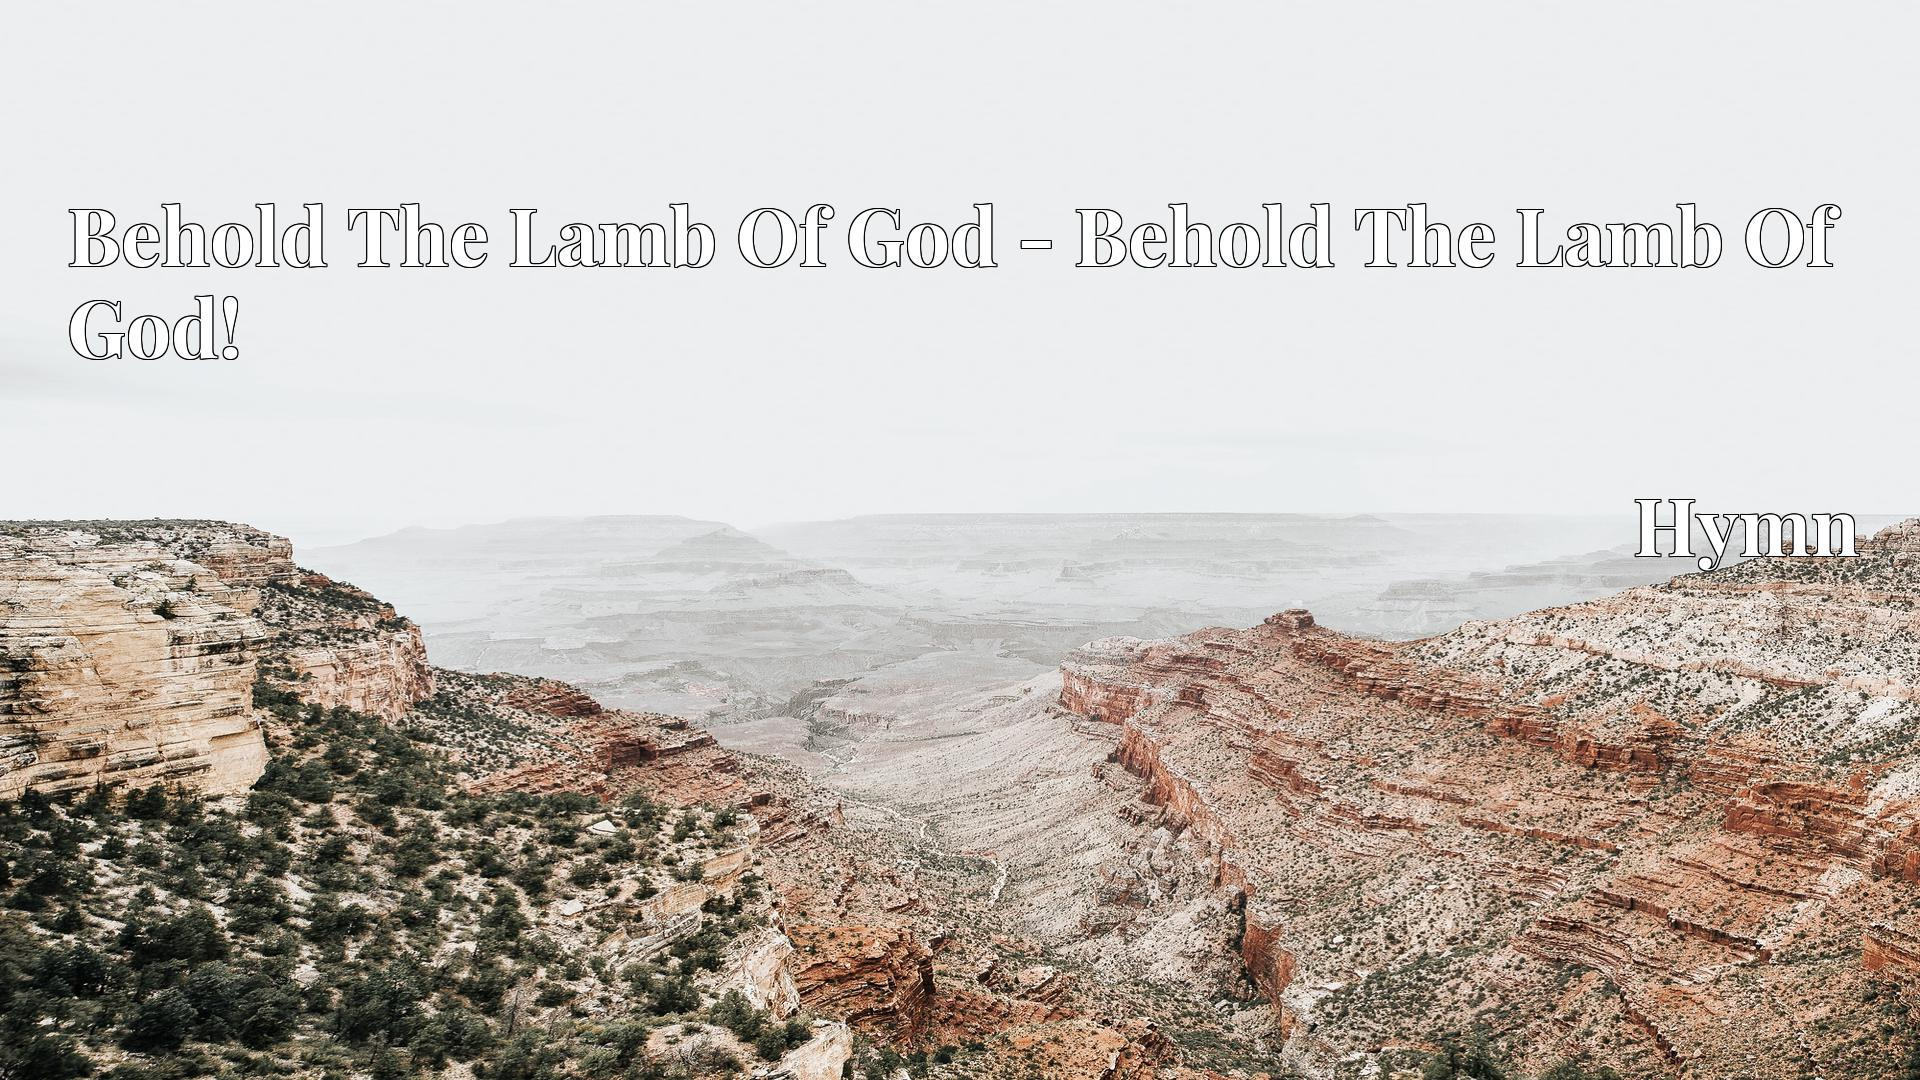 Behold The Lamb Of God - Behold The Lamb Of God! - Hymn